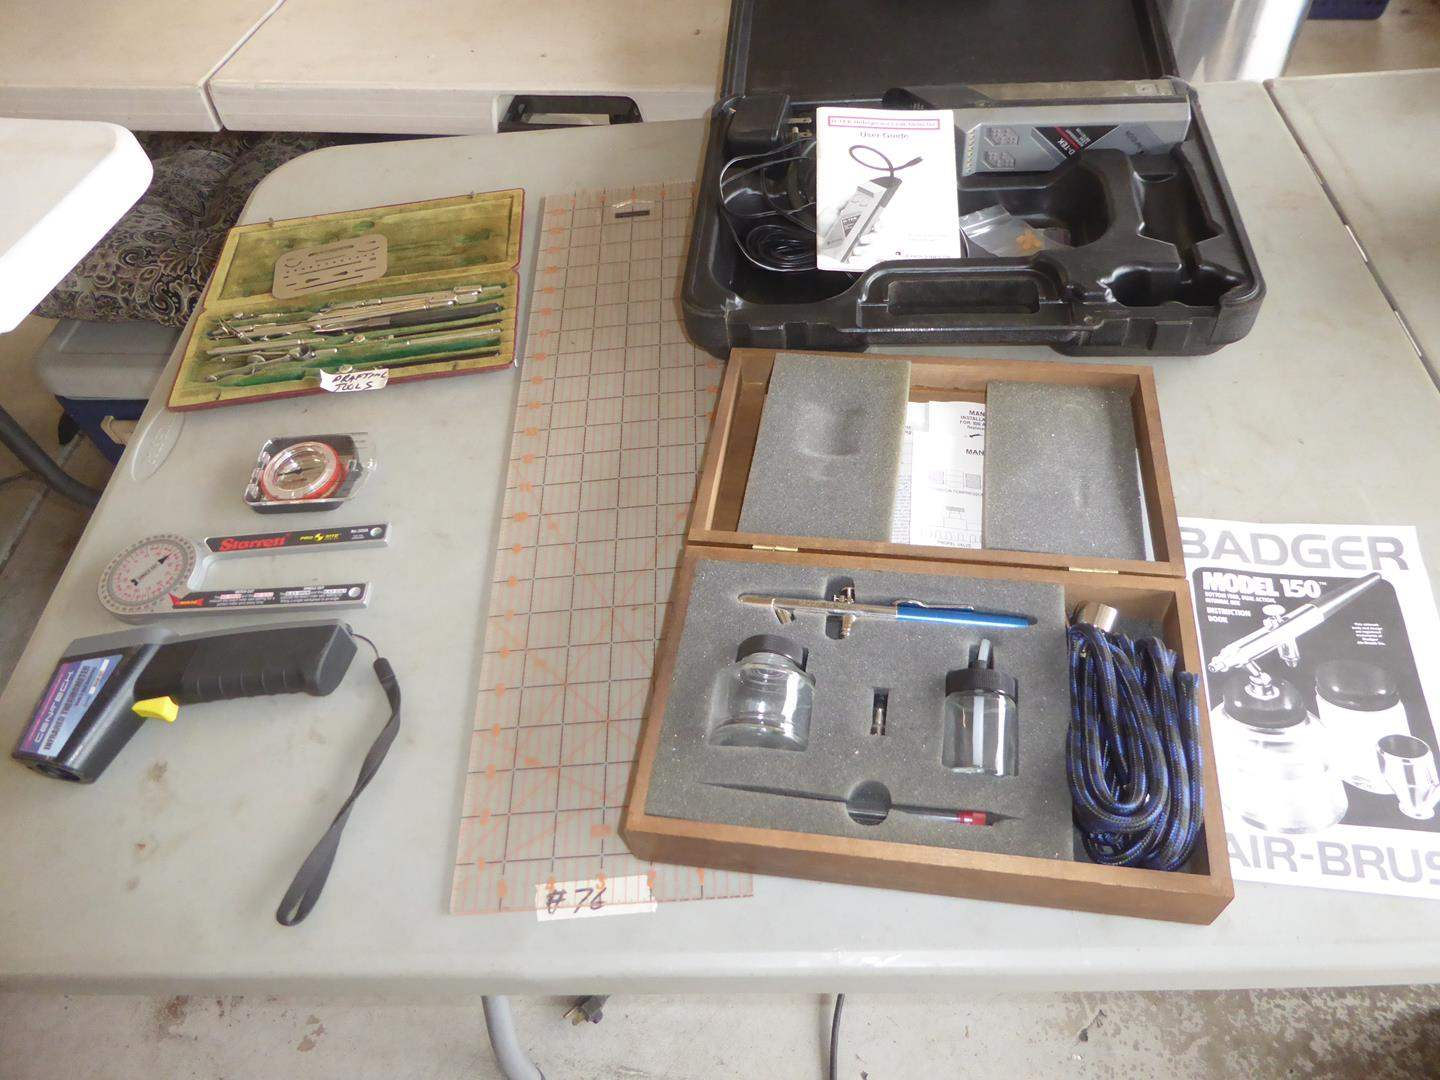 Lot # 76 - Vintage Drafting Tools, Infrared Thermometer, Refrigerant Leak Detector, Air-Brush Kit & More (main image)